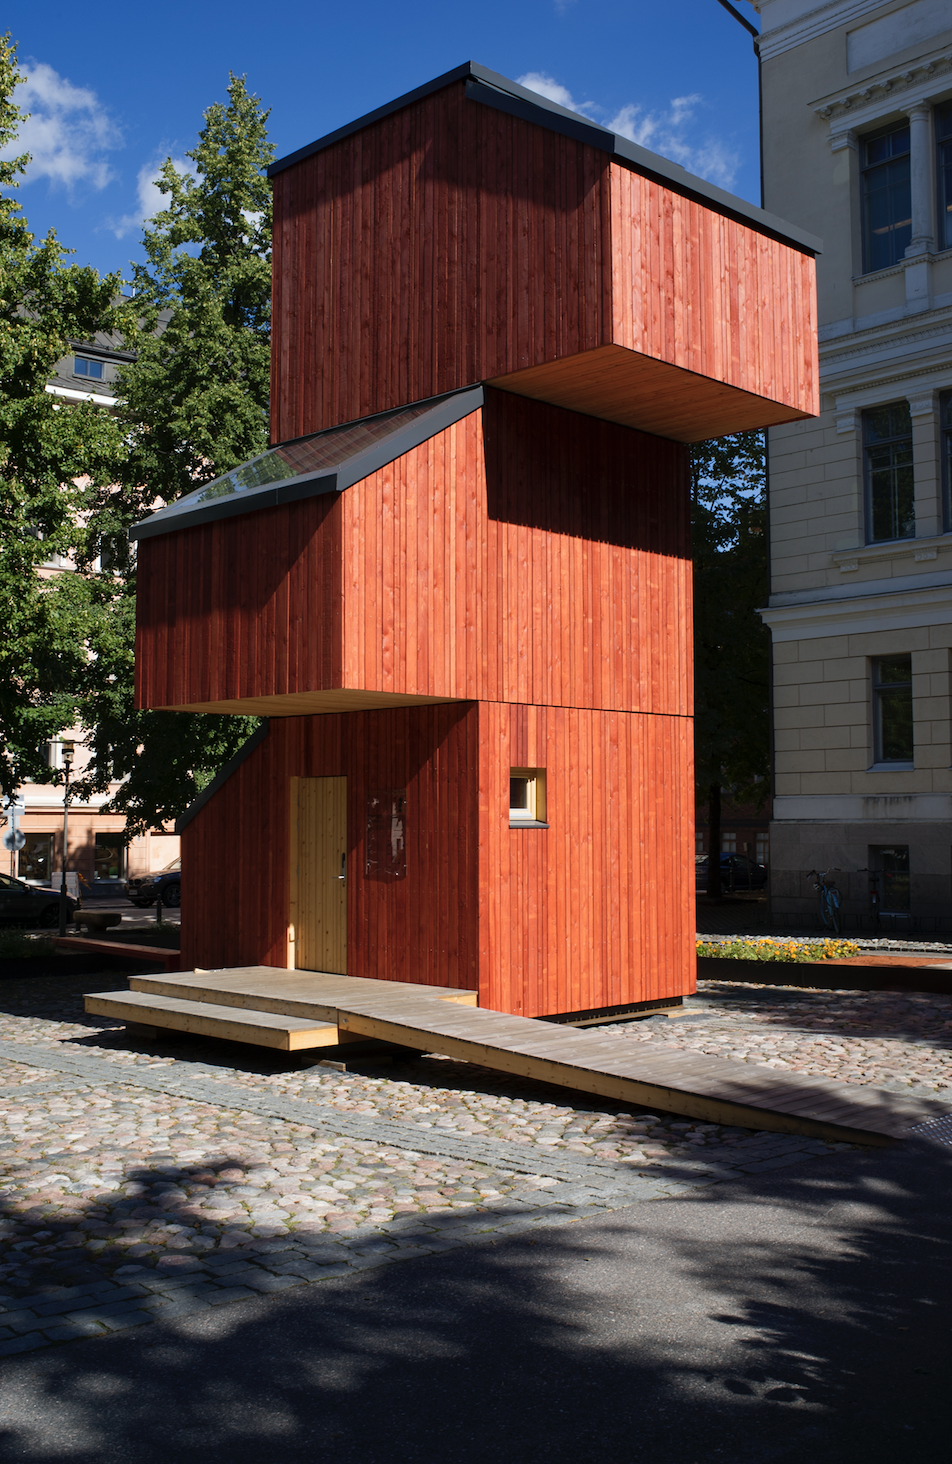 All about craft. The Kokoon: an affordable house project done while at Aalto University School of Arts Design and Architecture's Wood Program in Finland.